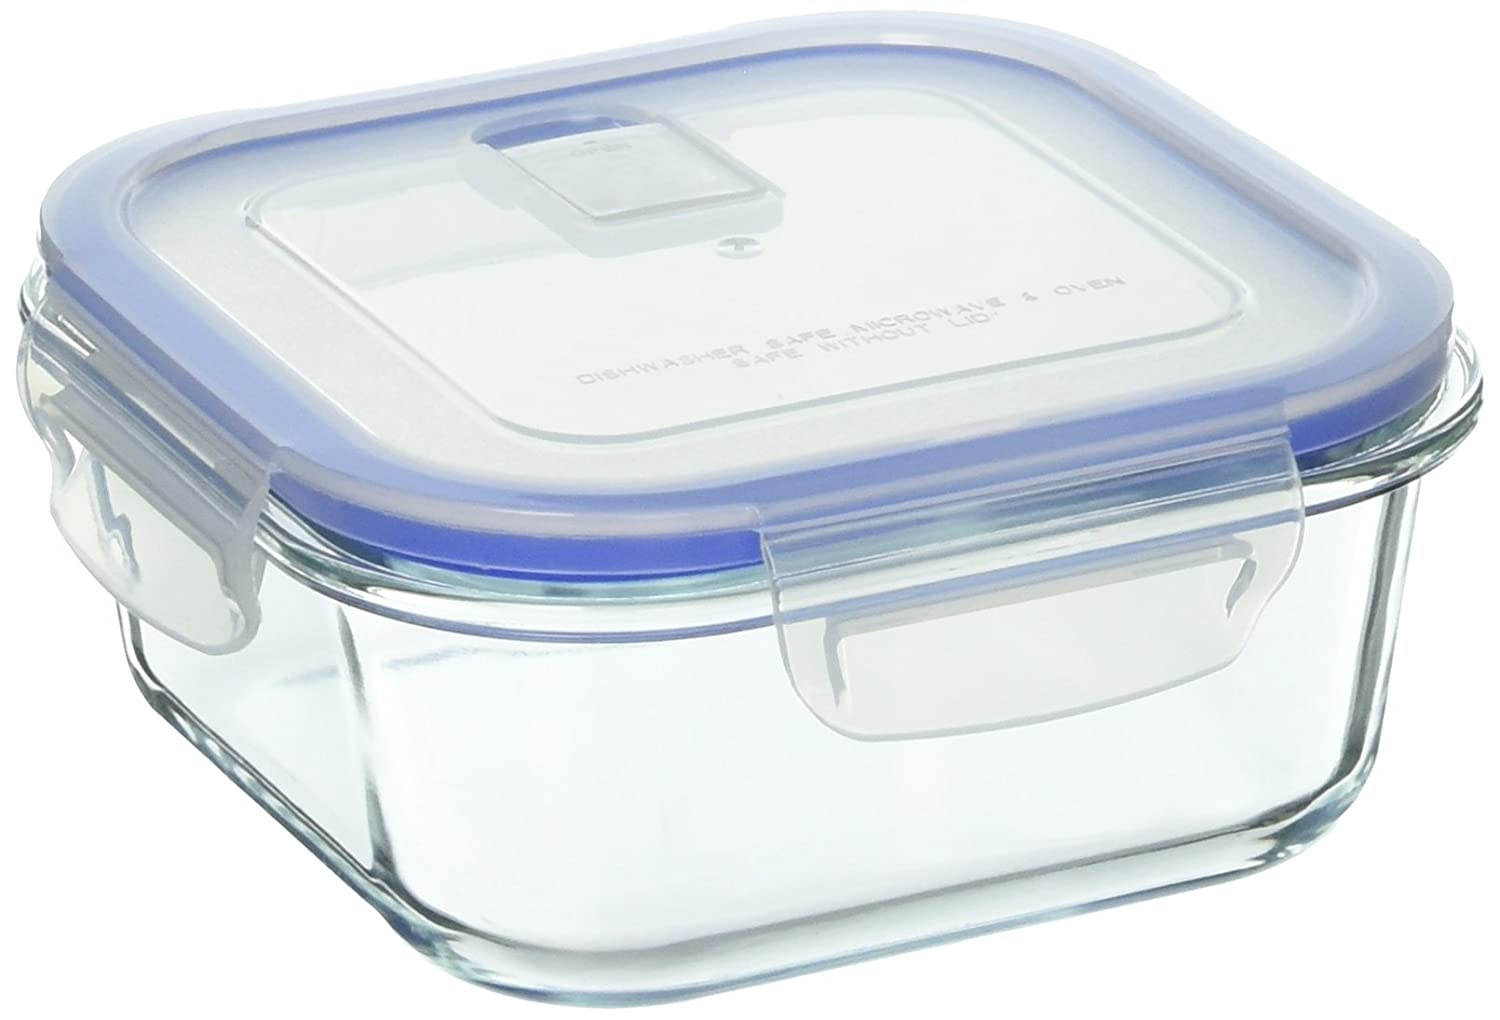 B4000-2 Uniware Heat Resistant Premium Glass Food Container with Snap-Lock Lid (SQUARE) (27 OZ)